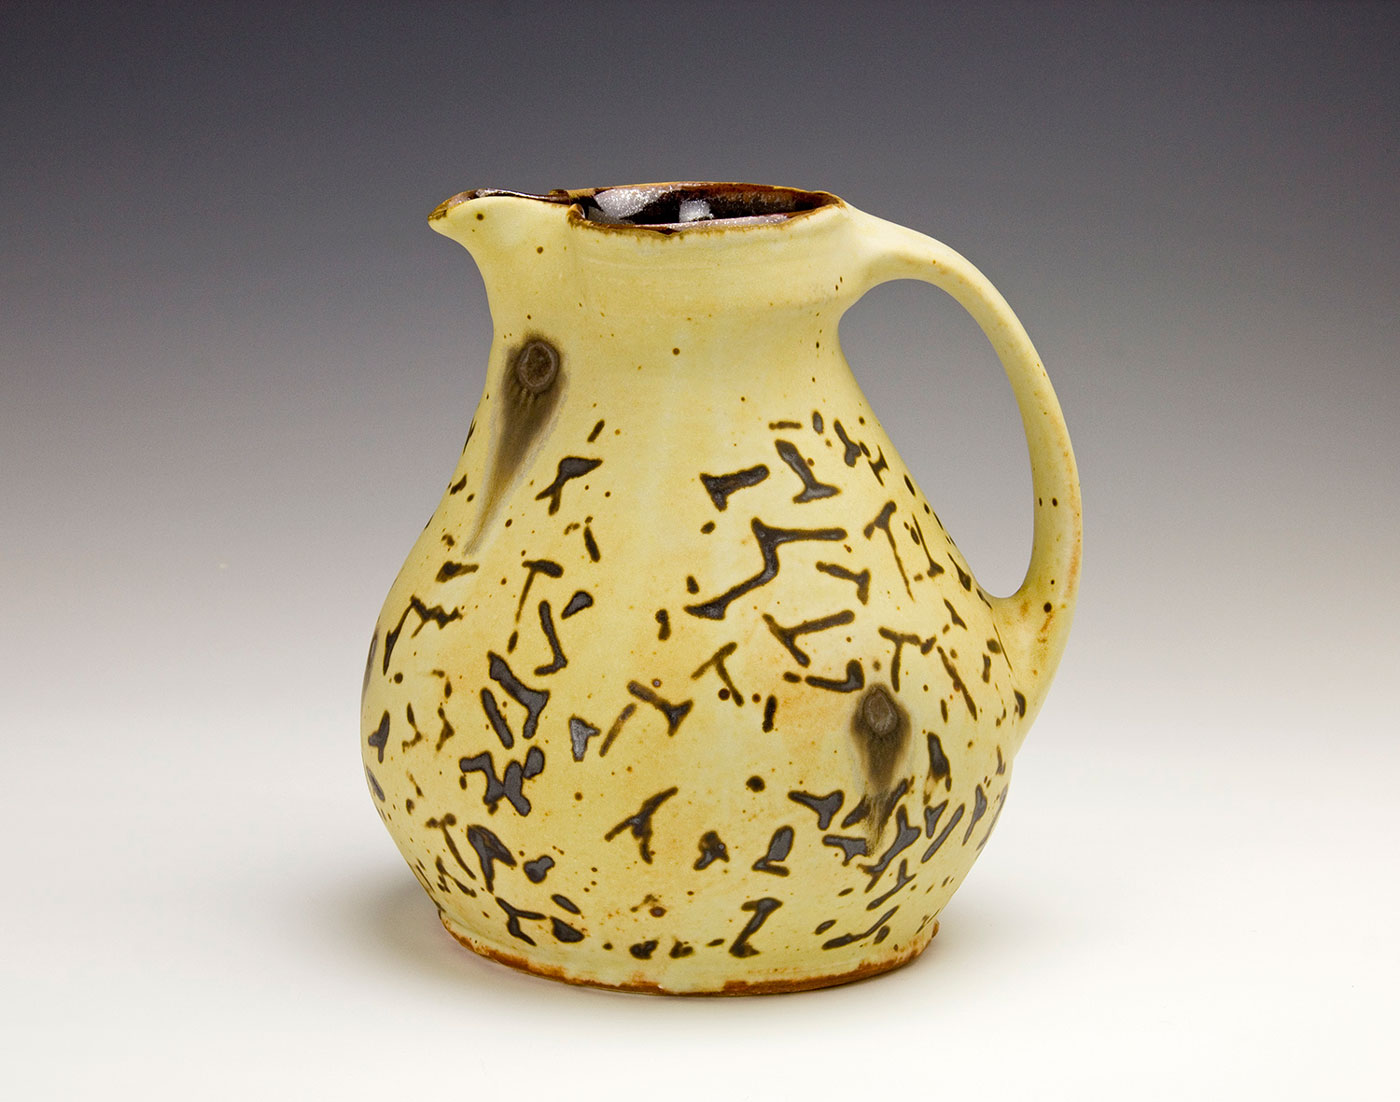 Studio-Pottery-Pitcher-Bruce-Gholson-North-Carolina.jpg